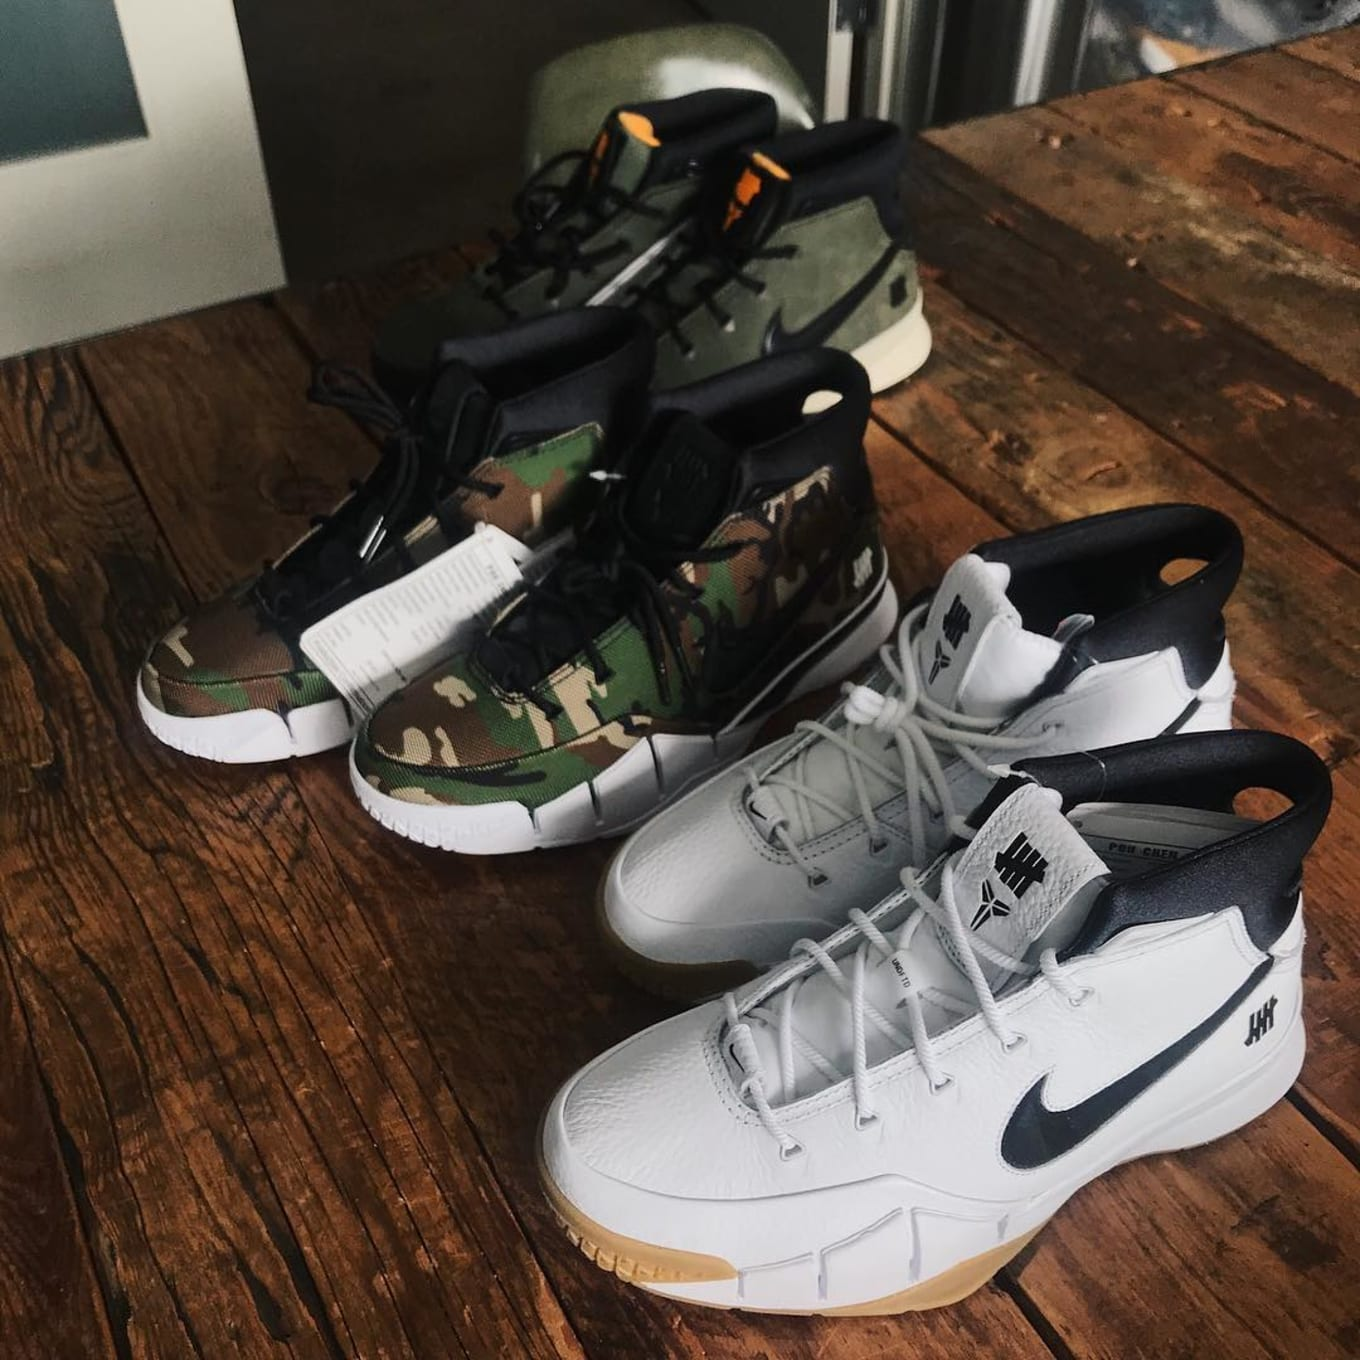 sale retailer acb23 4e851 Yet Another UNDFTD x Nike Zoom Kobe 1 Protro Colorway